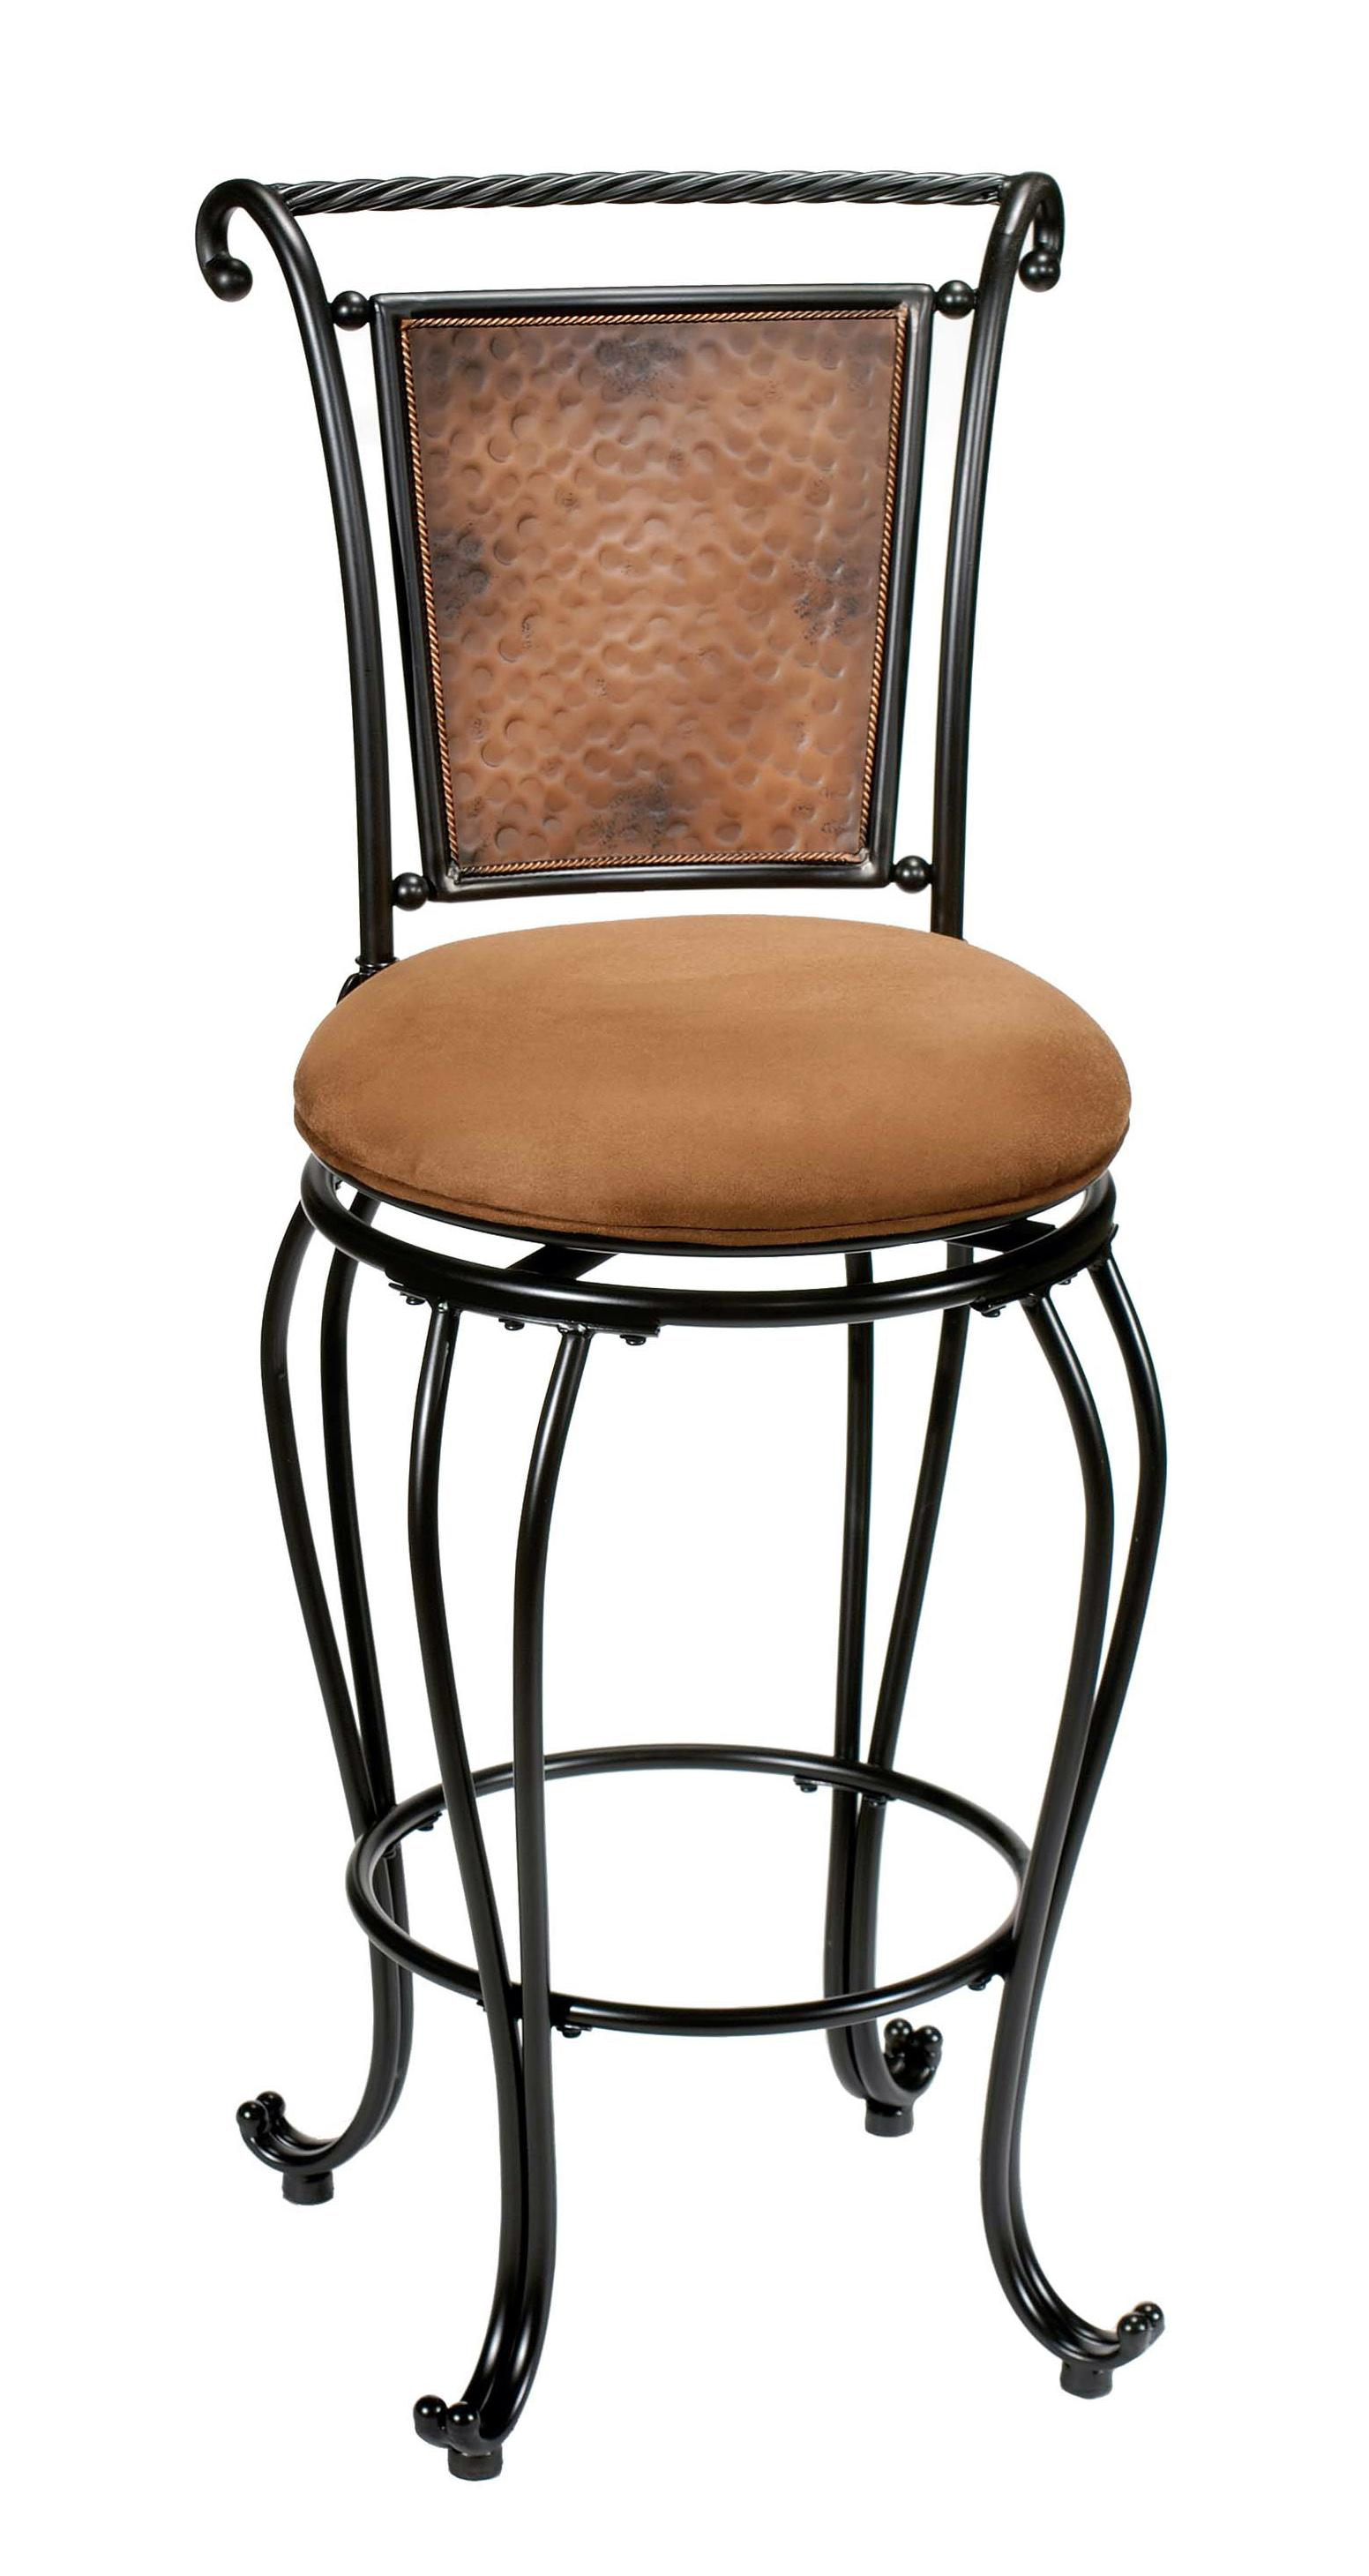 "Hillsdale Metal Stools 24"" Counter Height Milan Stool  - Item Number: 4527-827"